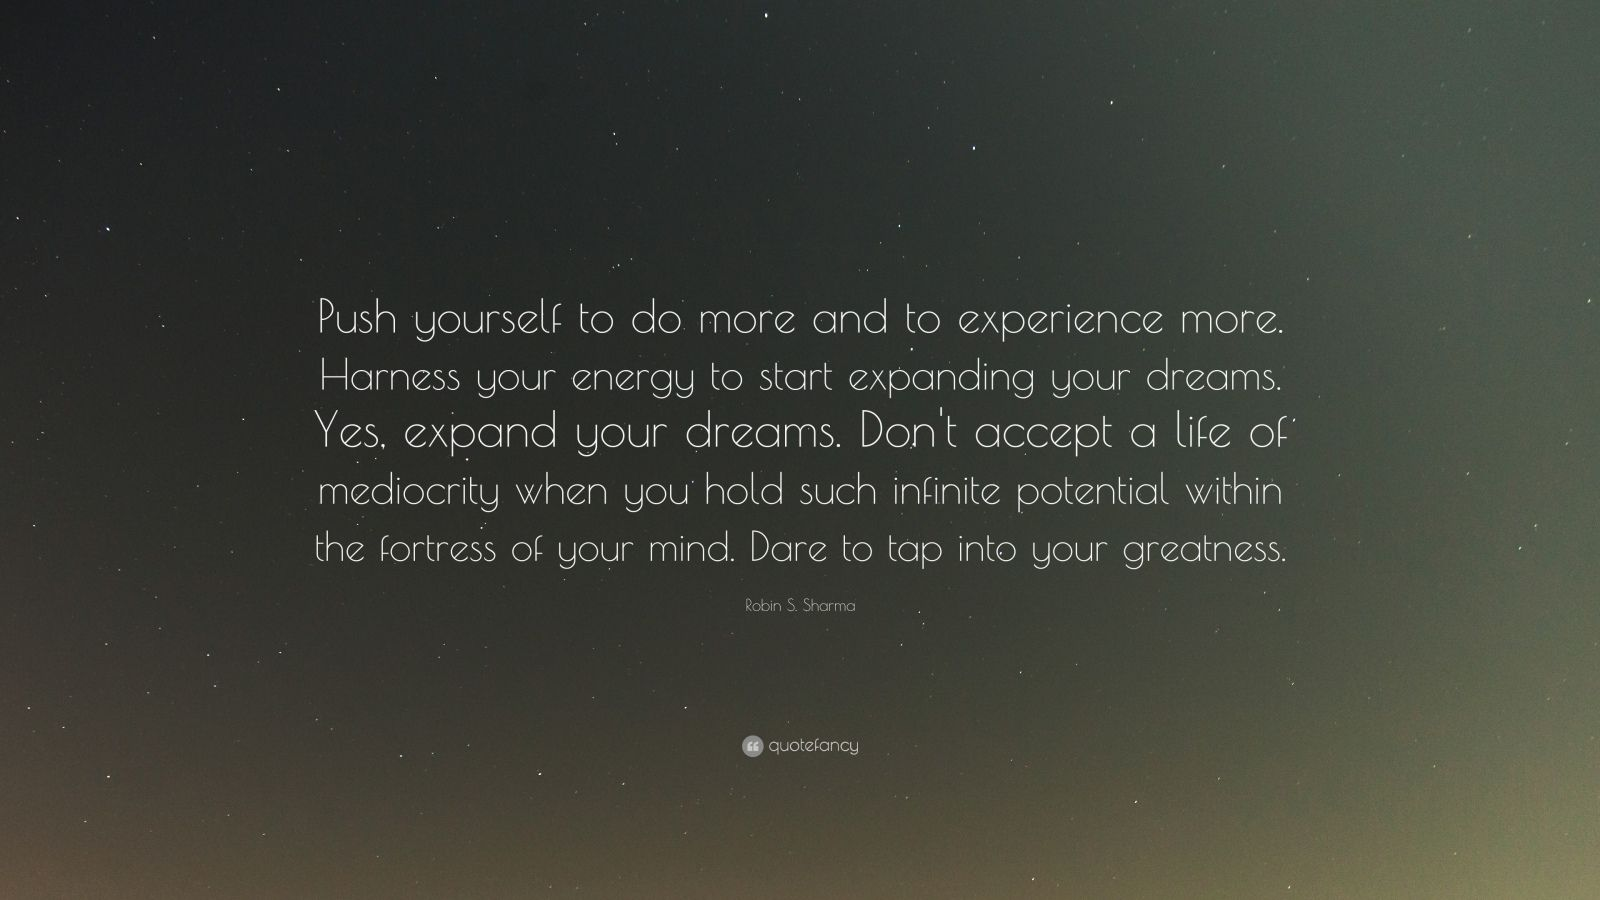 "Robin S. Sharma Quote: ""Push yourself to do more and to experience more. Harness your energy to start expanding your dreams. Yes, expand your dreams. Don't accept a life of mediocrity when you hold such infinite potential within the fortress of your mind. Dare to tap into your greatness."""